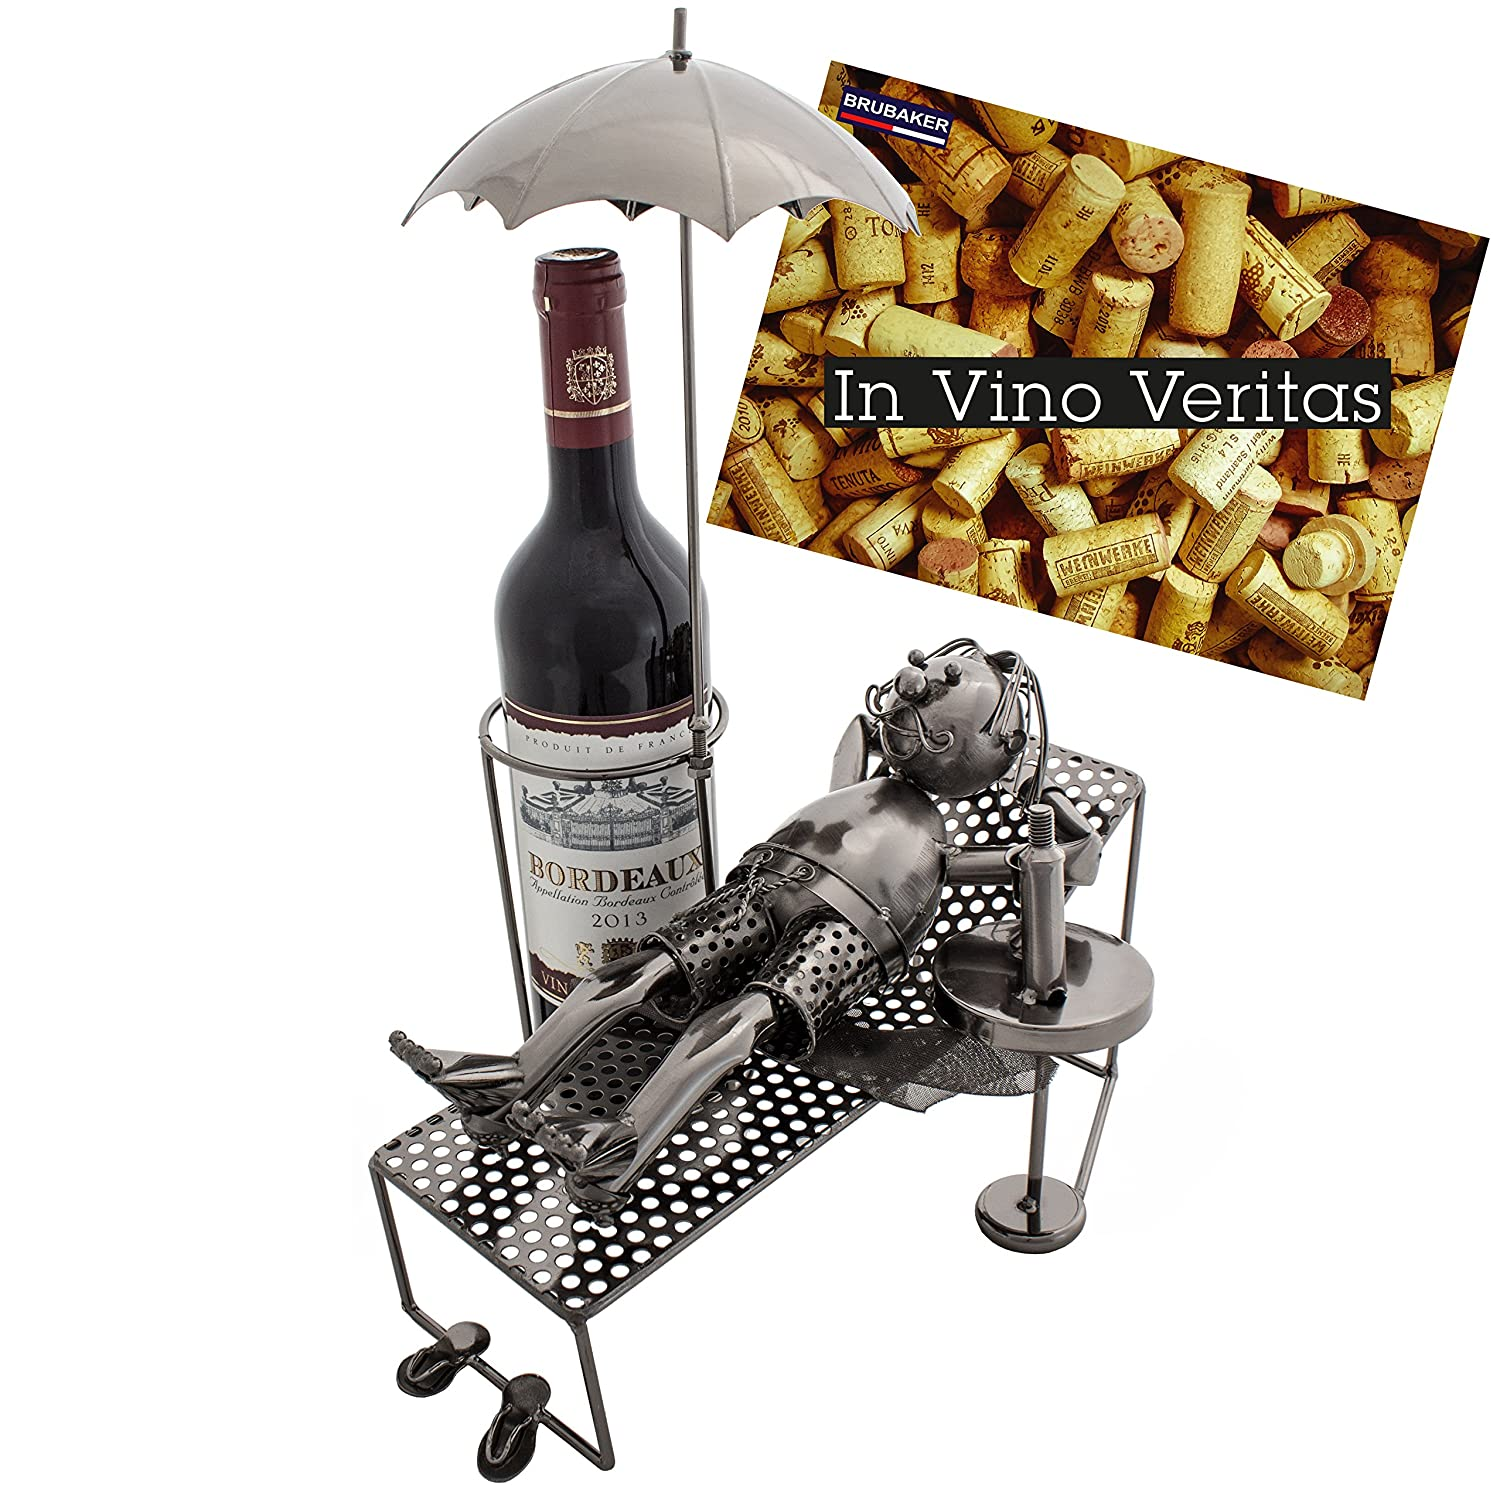 BRUBAKER Wine Bottle Holder